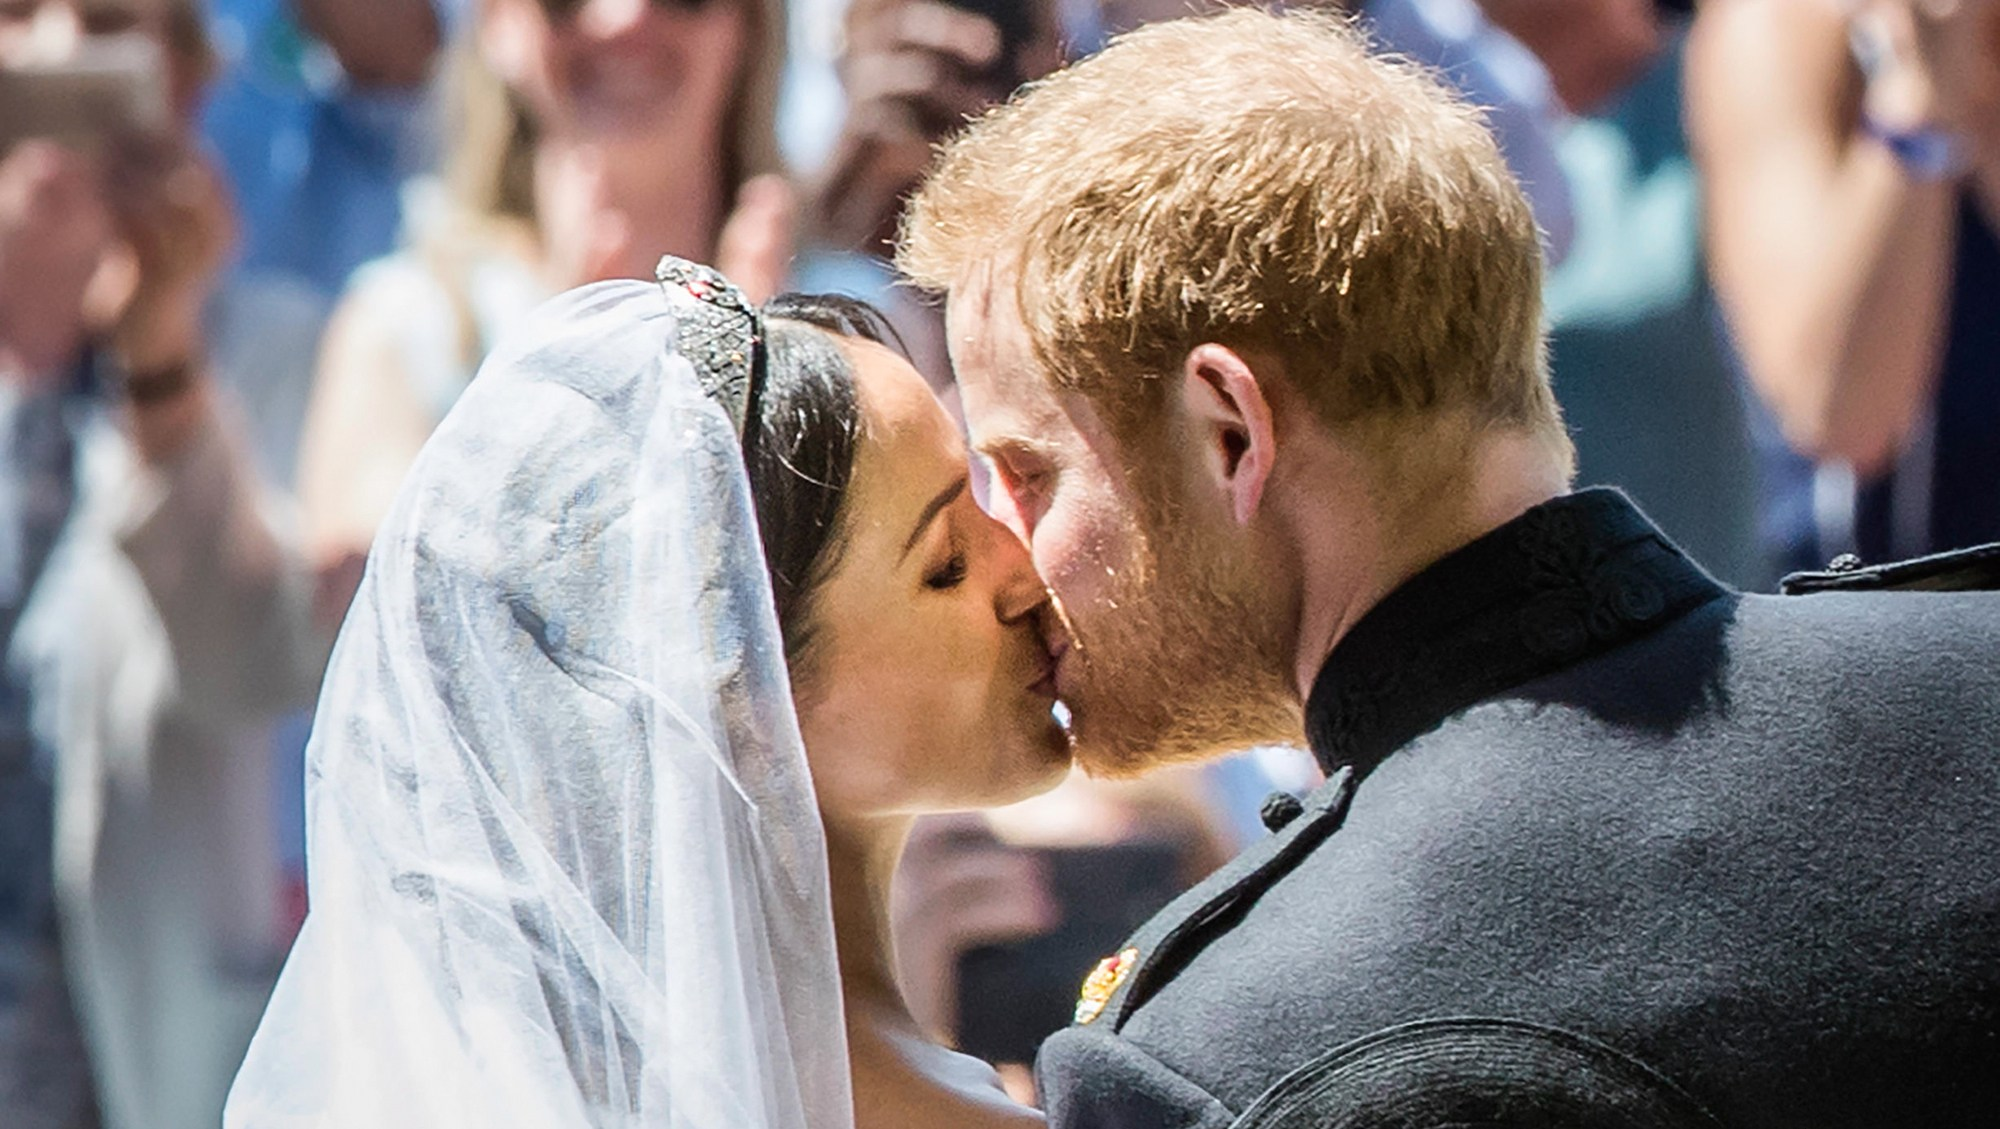 Wedding of Prince Harry and Meghan Markle, at St George's Chapel at Windsor Castle in Berkshire